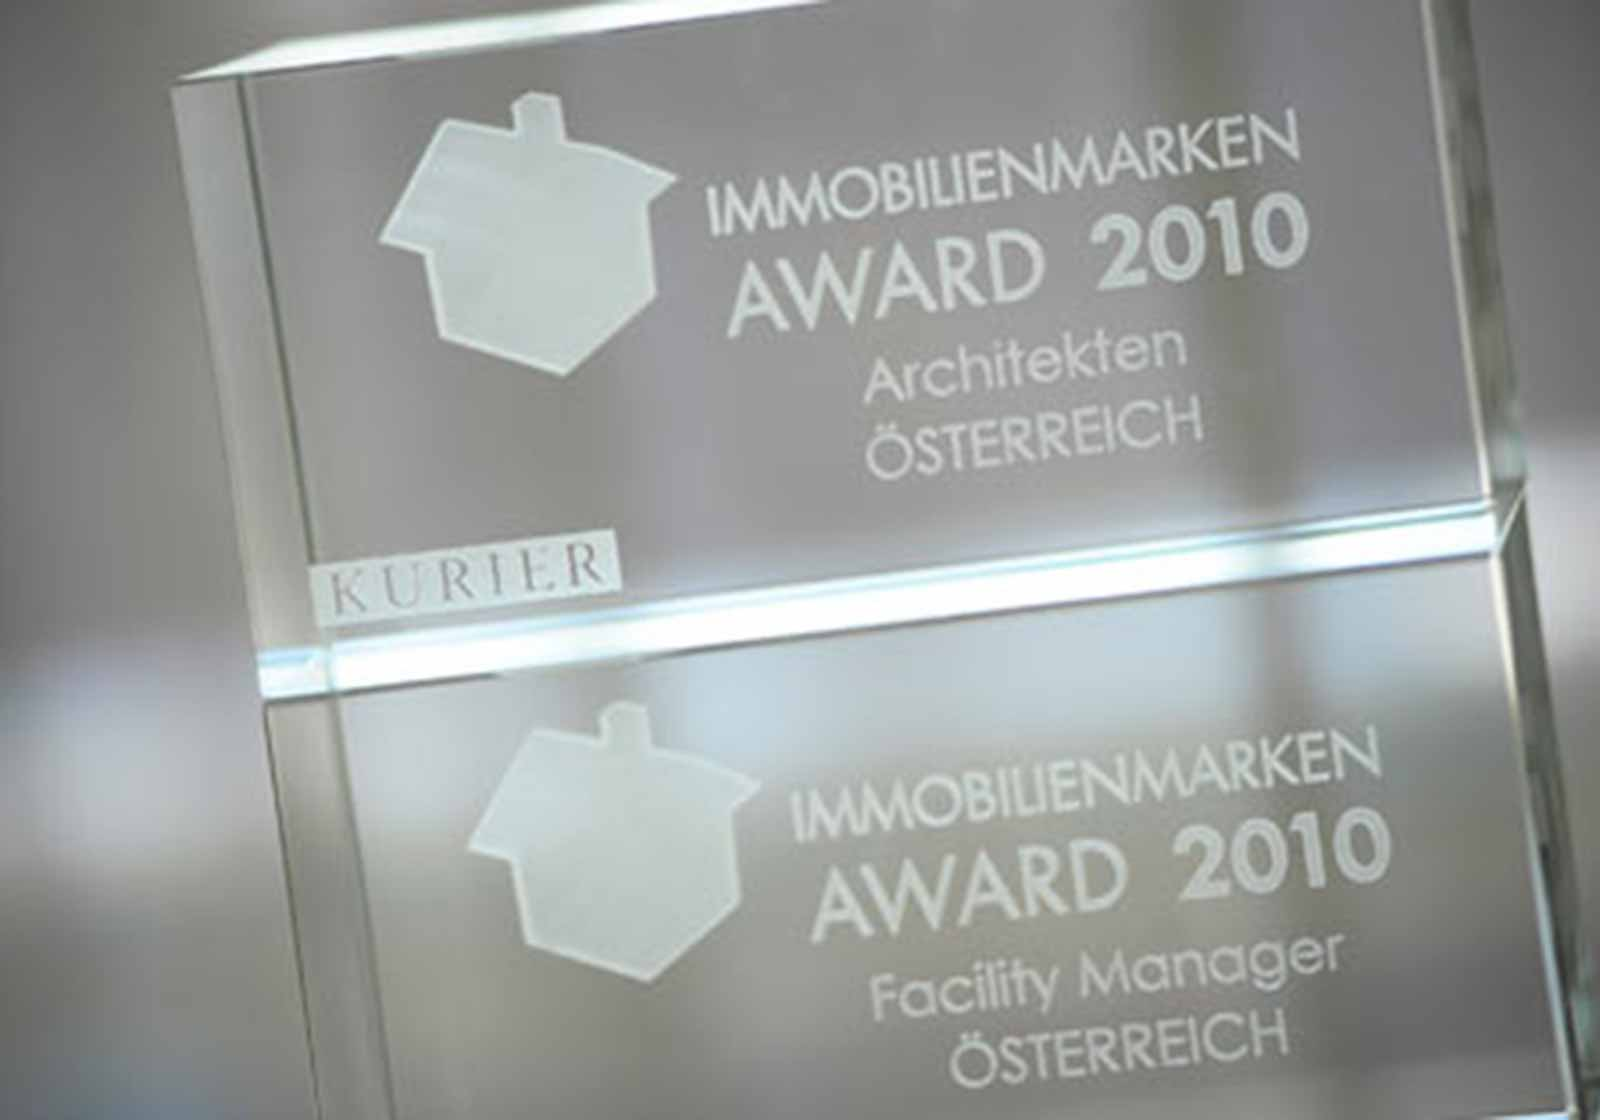 The Real Estate Award 2010